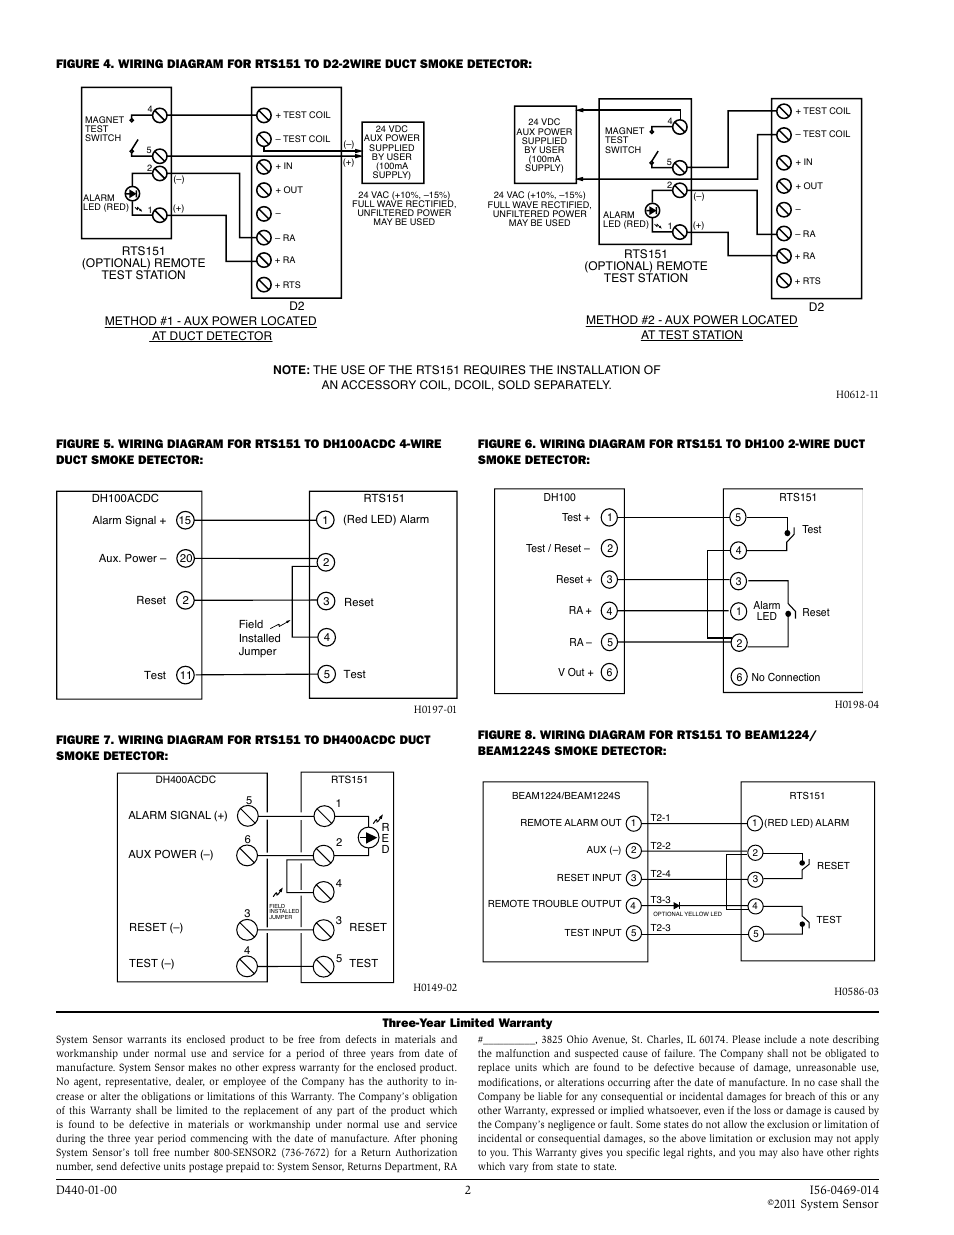 System Sensor Wiring Diagram Diagrams Source Speed Rts151 User Manual Page 2 Vehicle